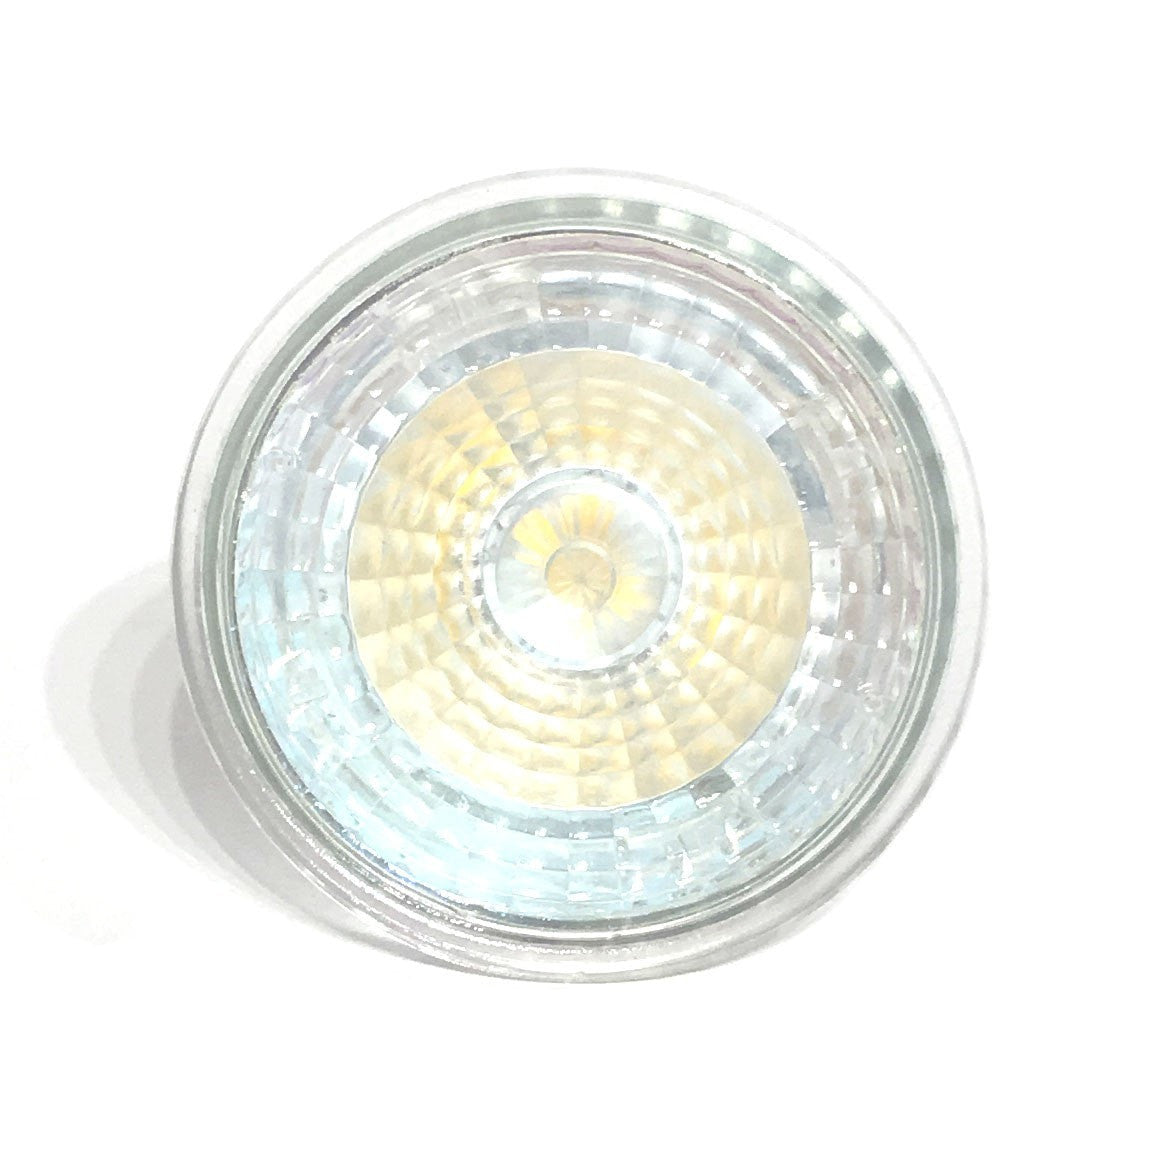 Energizer 5w 50w Gu10 Led Glass Spotlight 36 Degree Dimmable Circuit Series 5b15dledcircuitjpgd Available Ledsmiths